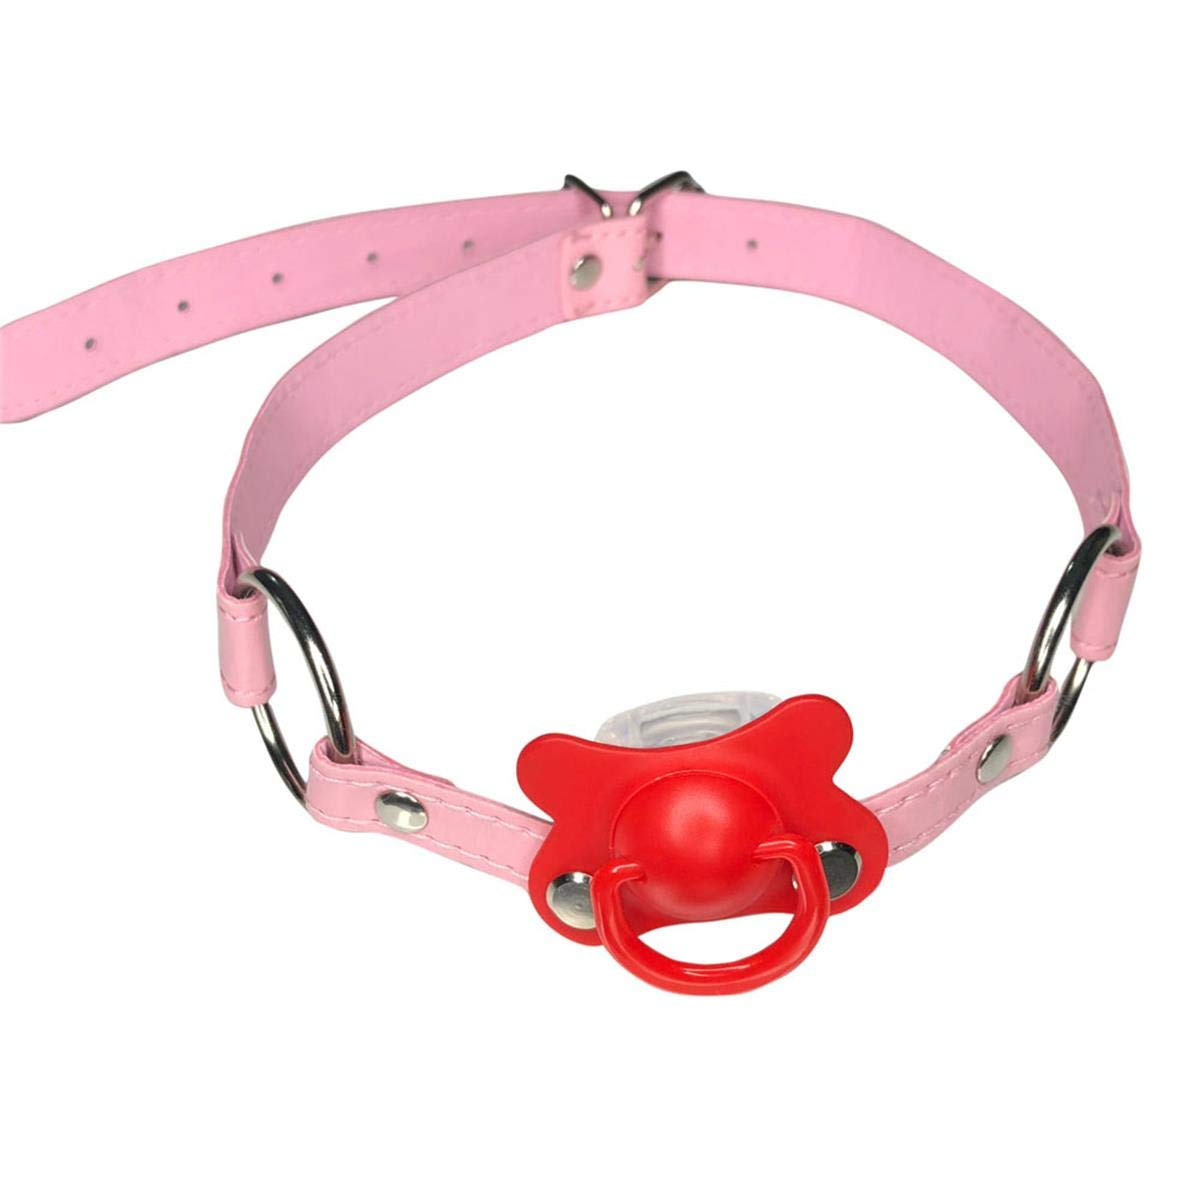 DDLG/ABDL Adult Baby Pacifier Gag With Choker Collar Pink